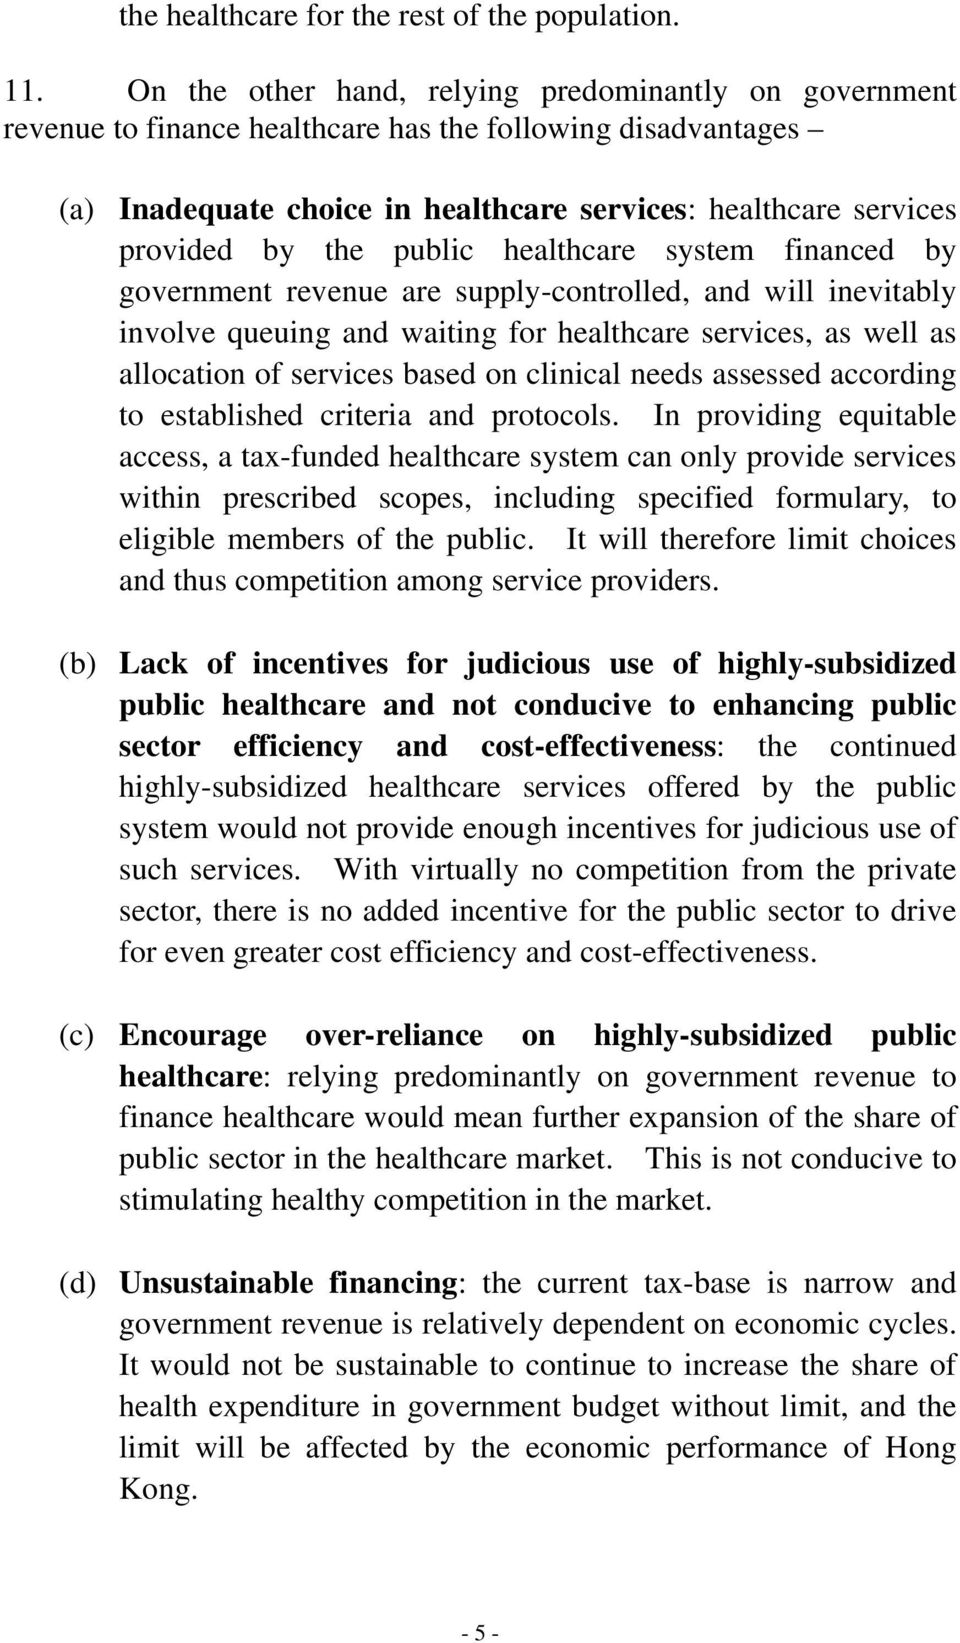 public healthcare system financed by government revenue are supply-controlled, and will inevitably involve queuing and waiting for healthcare services, as well as allocation of services based on